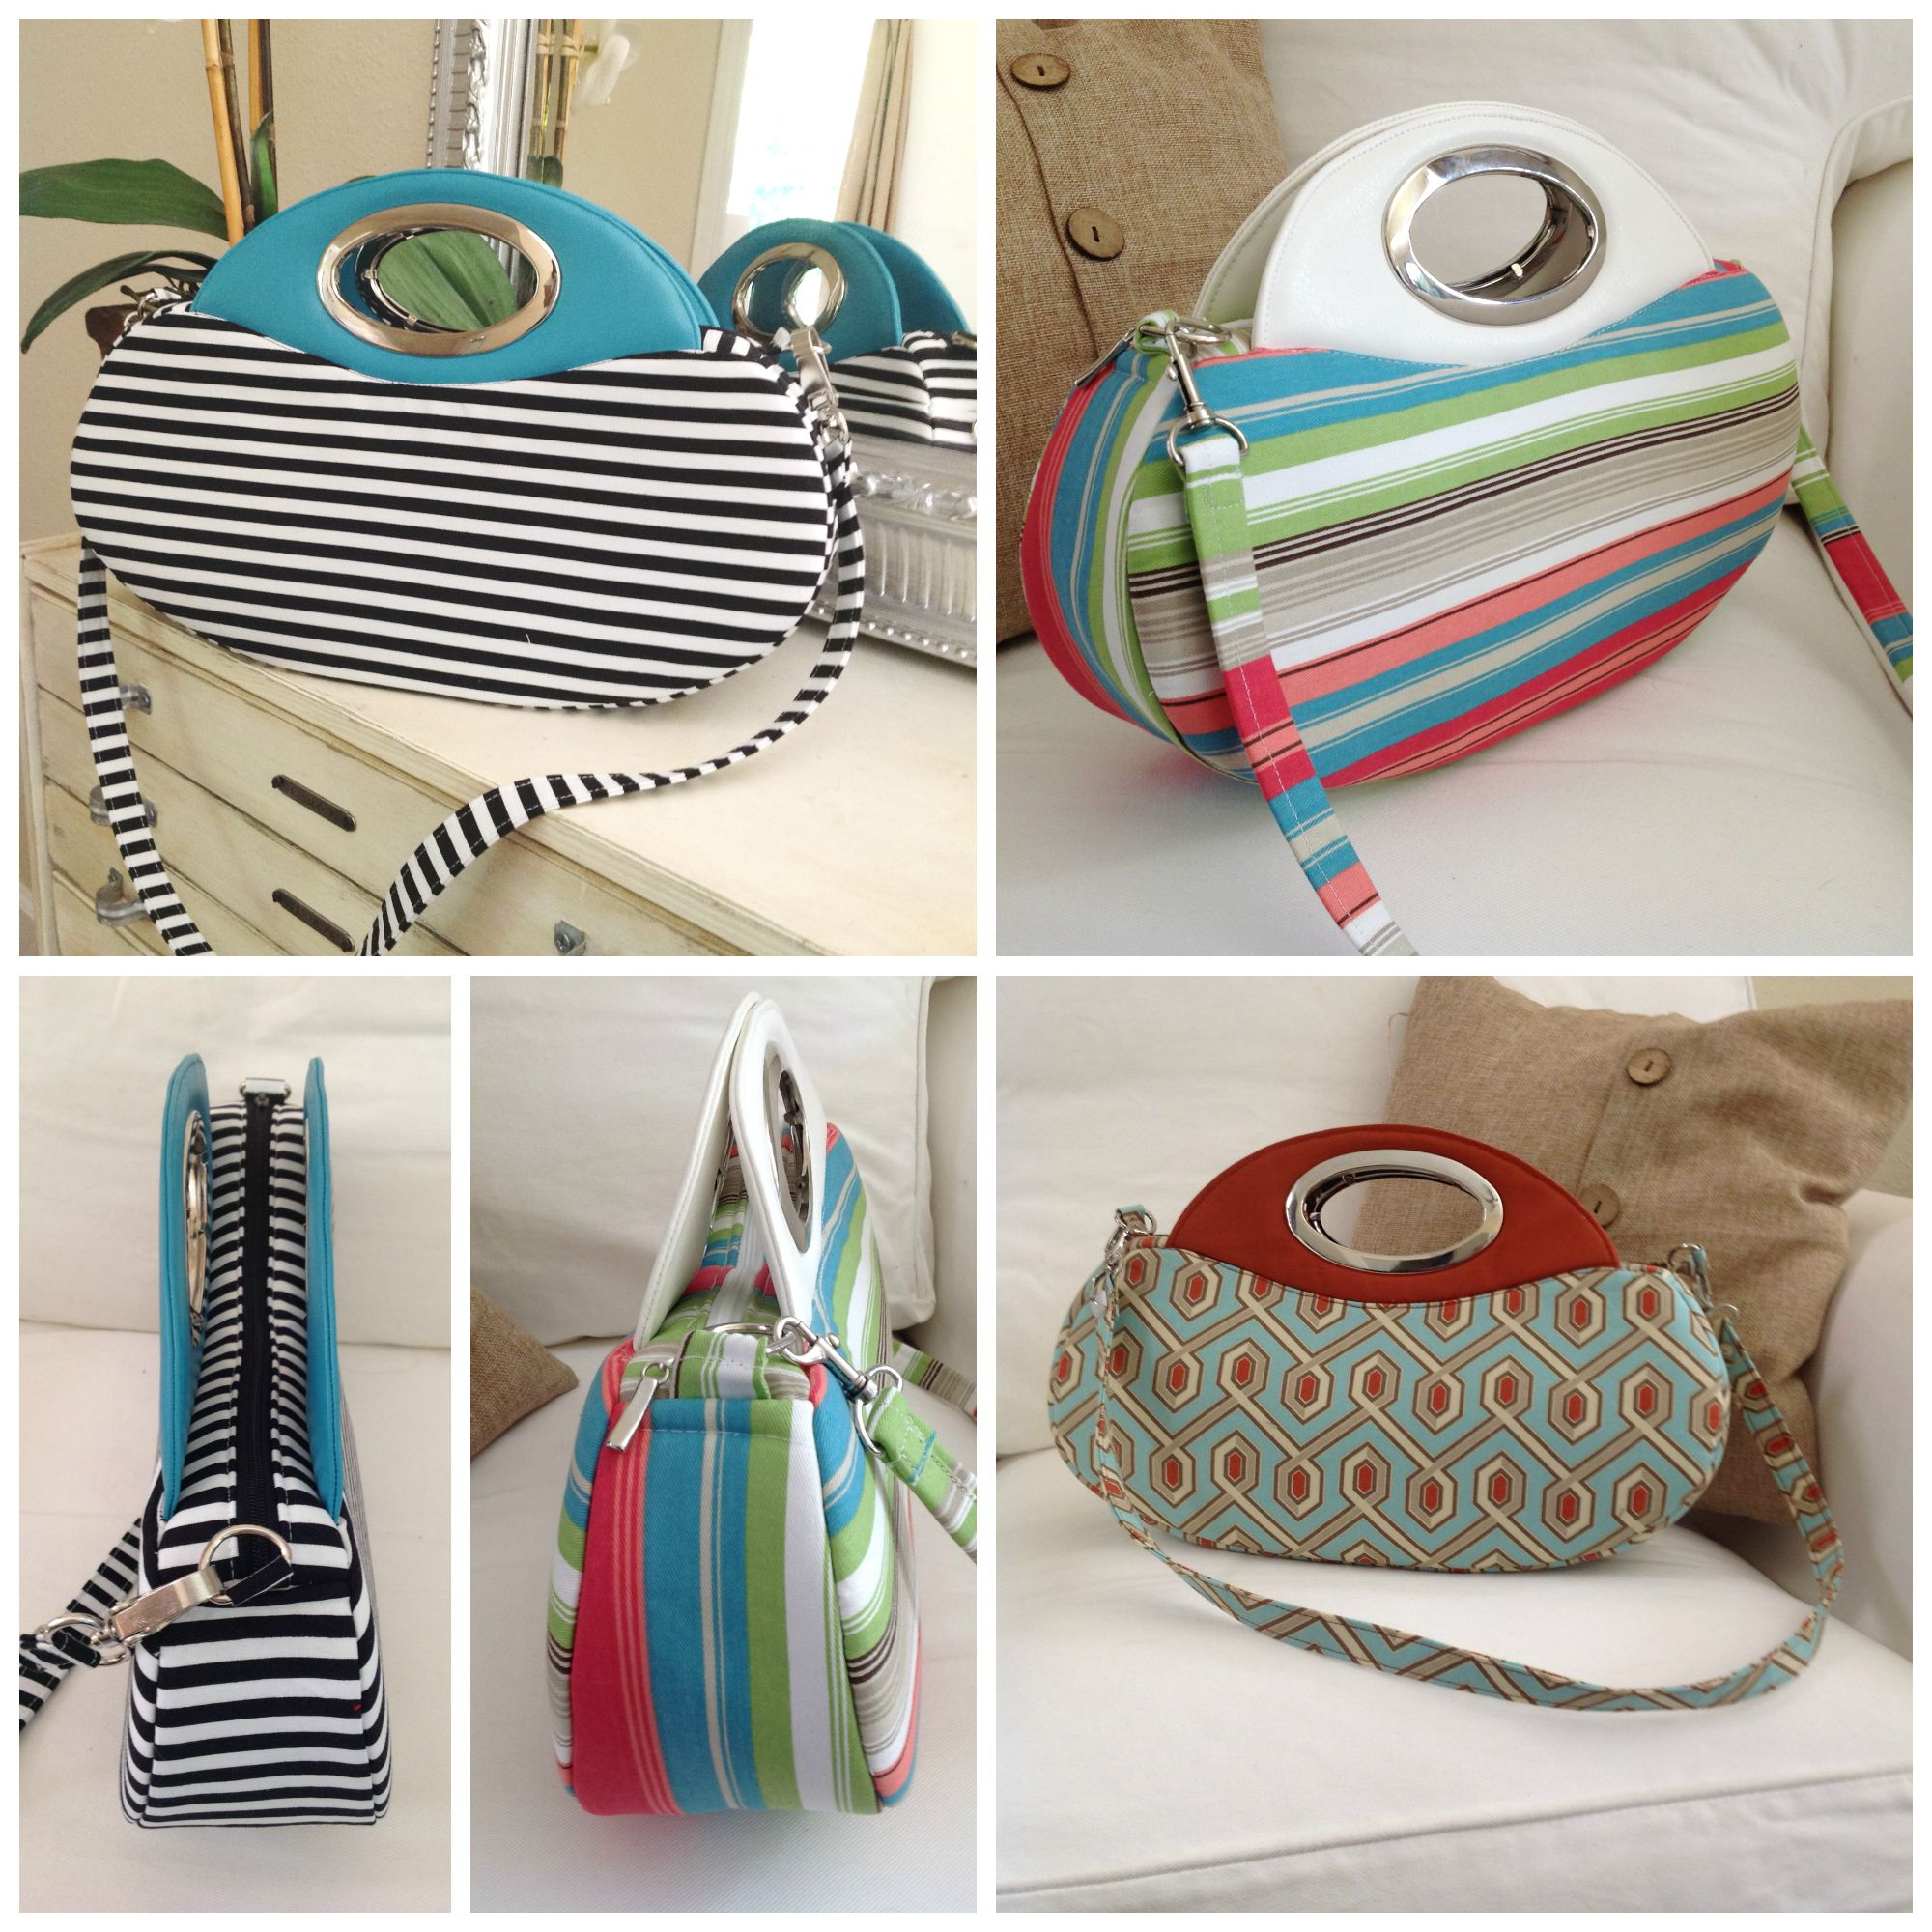 c9930892fdaa The results of the research bags designs and patterns